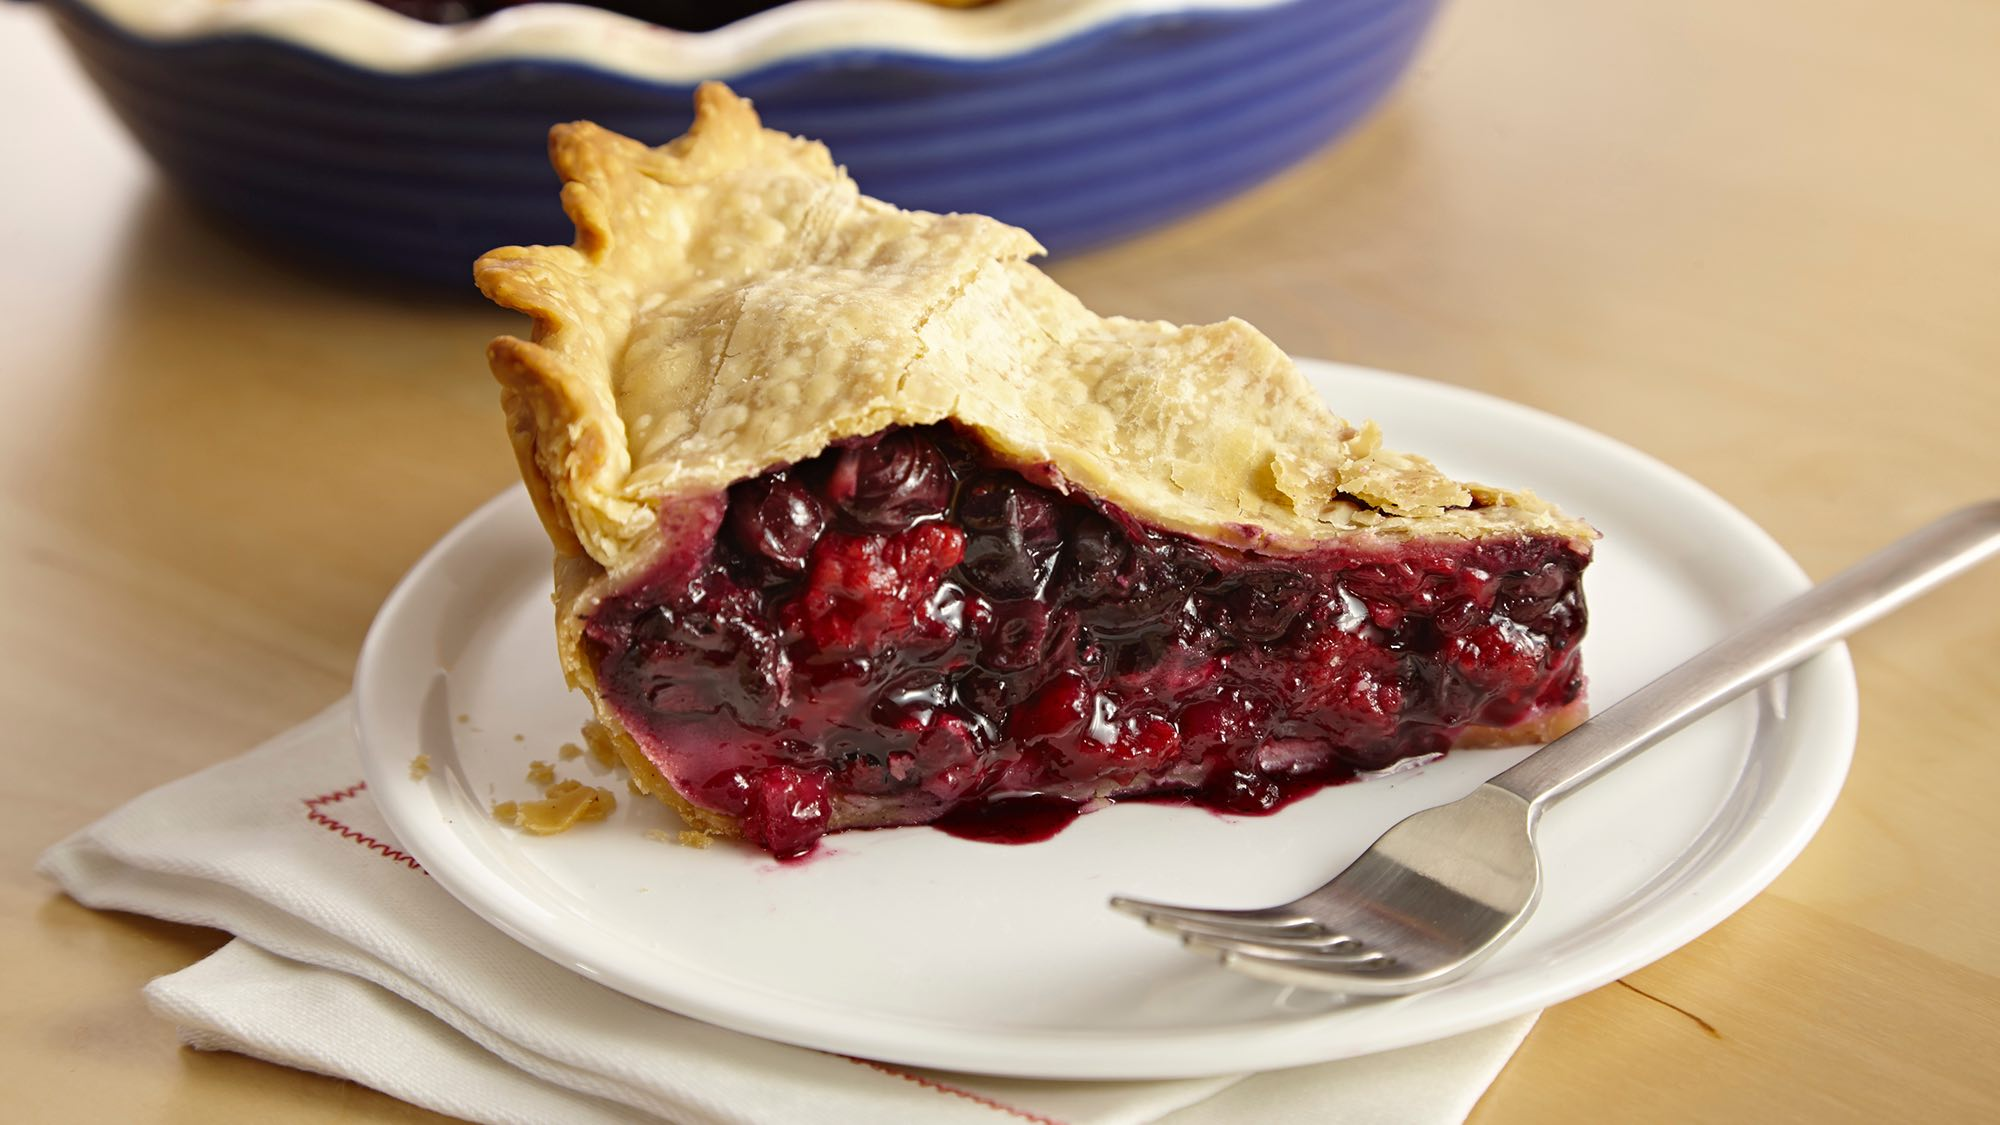 McCormick Mixed Berry Pie